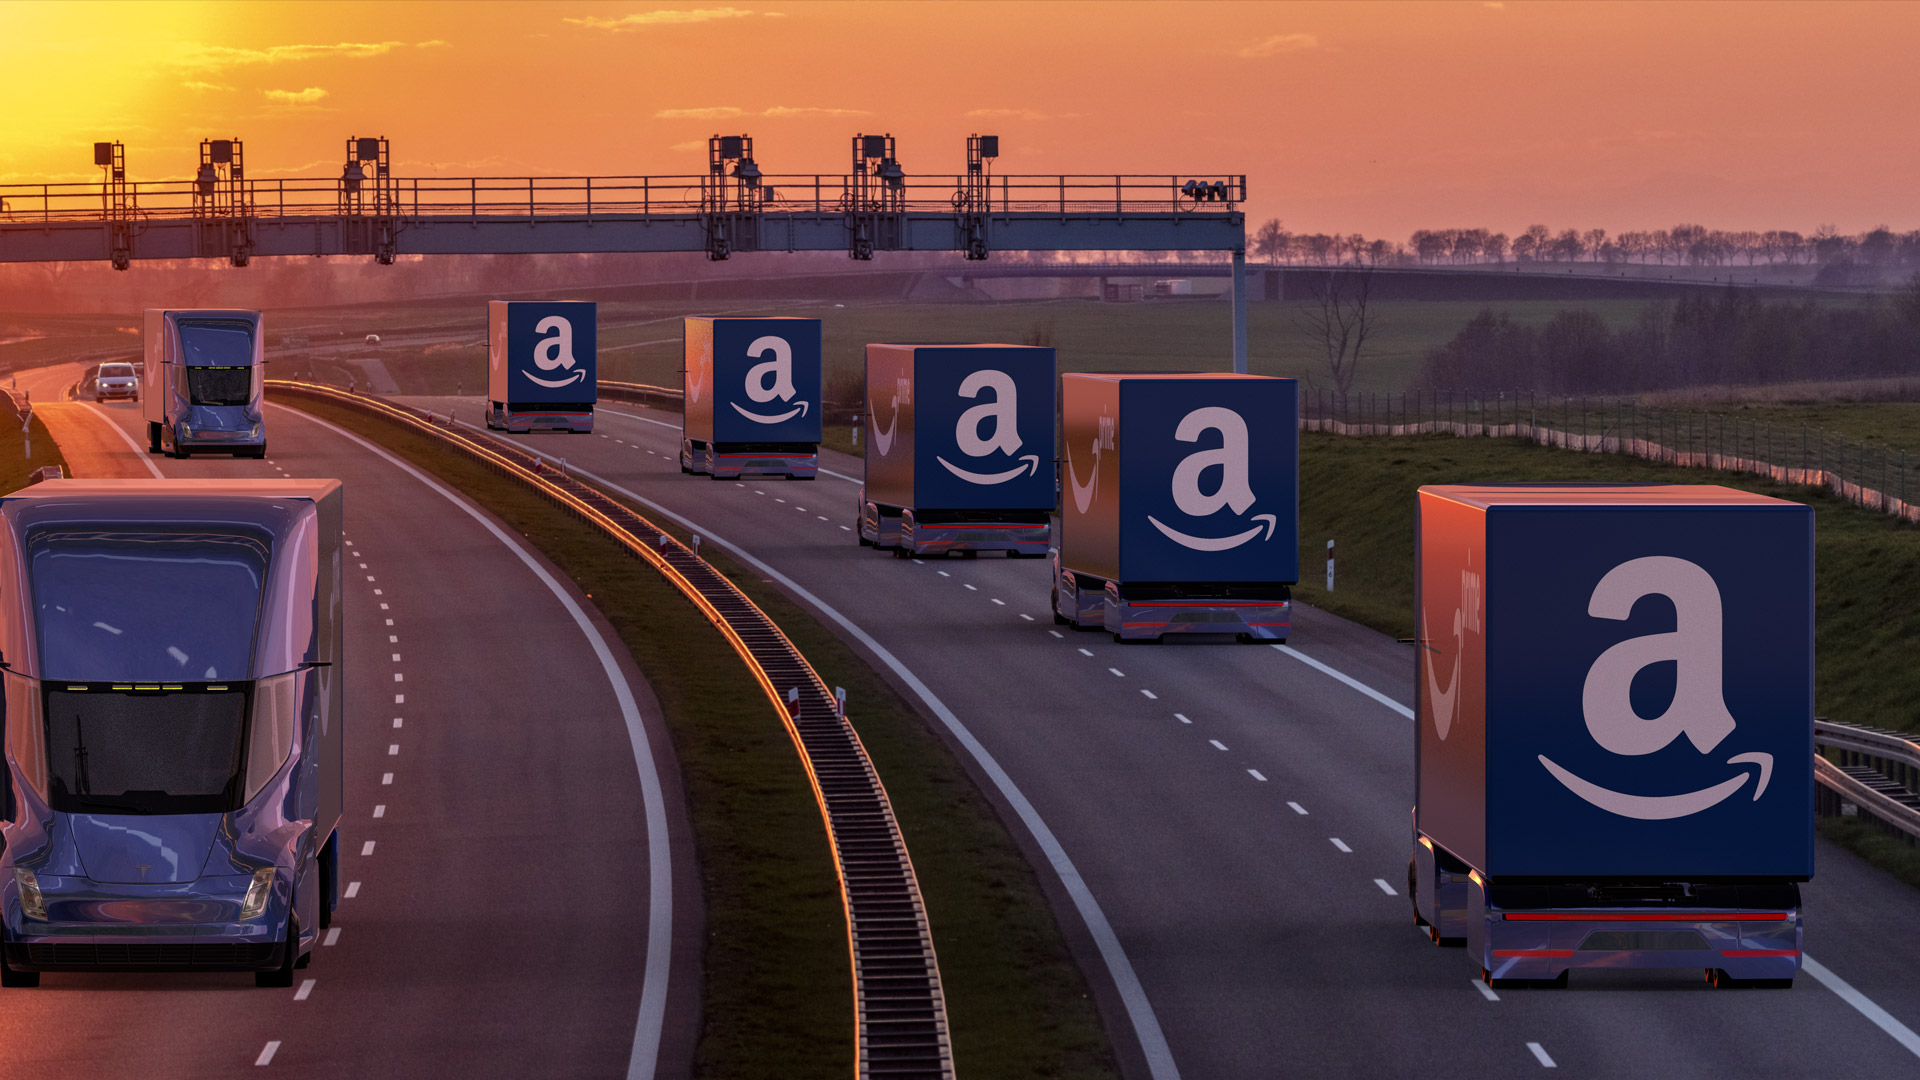 Amazon delivery trucks on a highway